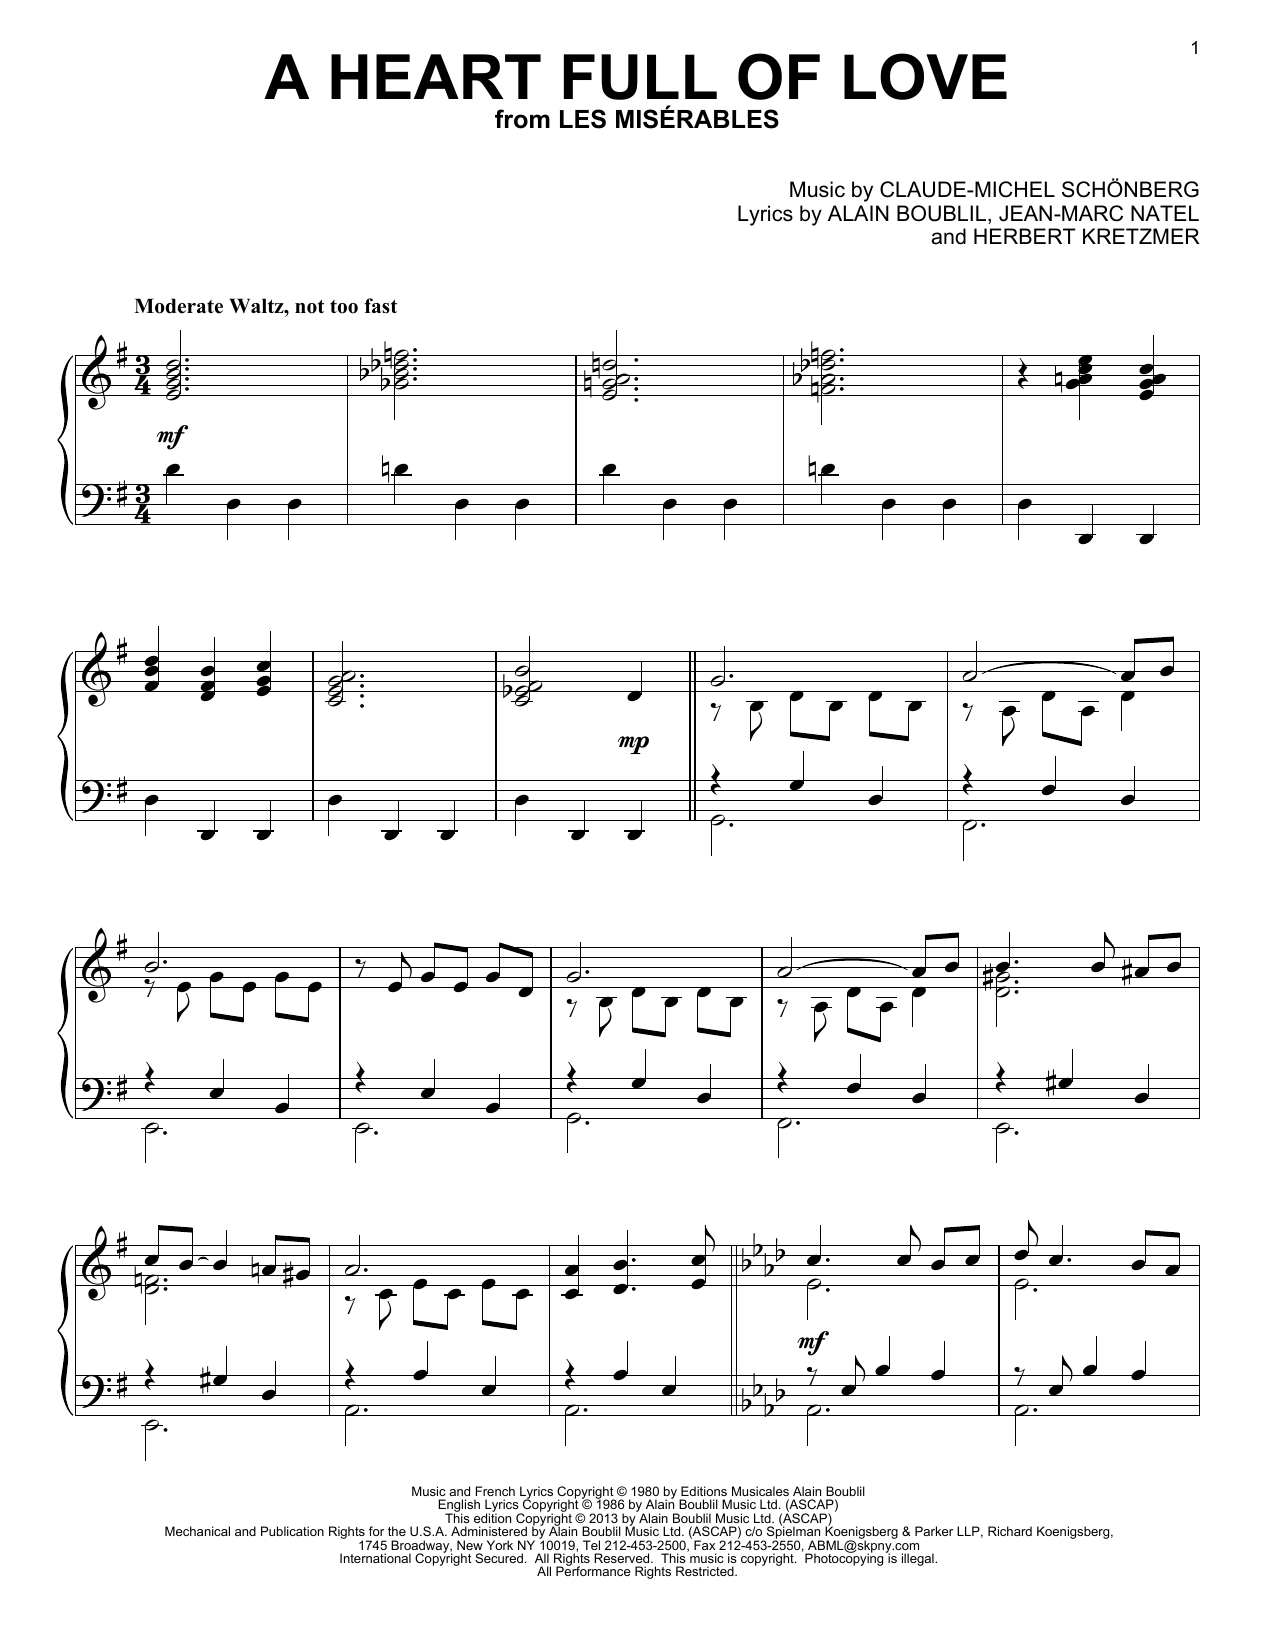 Les Miserables (Musical) A Heart Full Of Love sheet music notes and chords. Download Printable PDF.